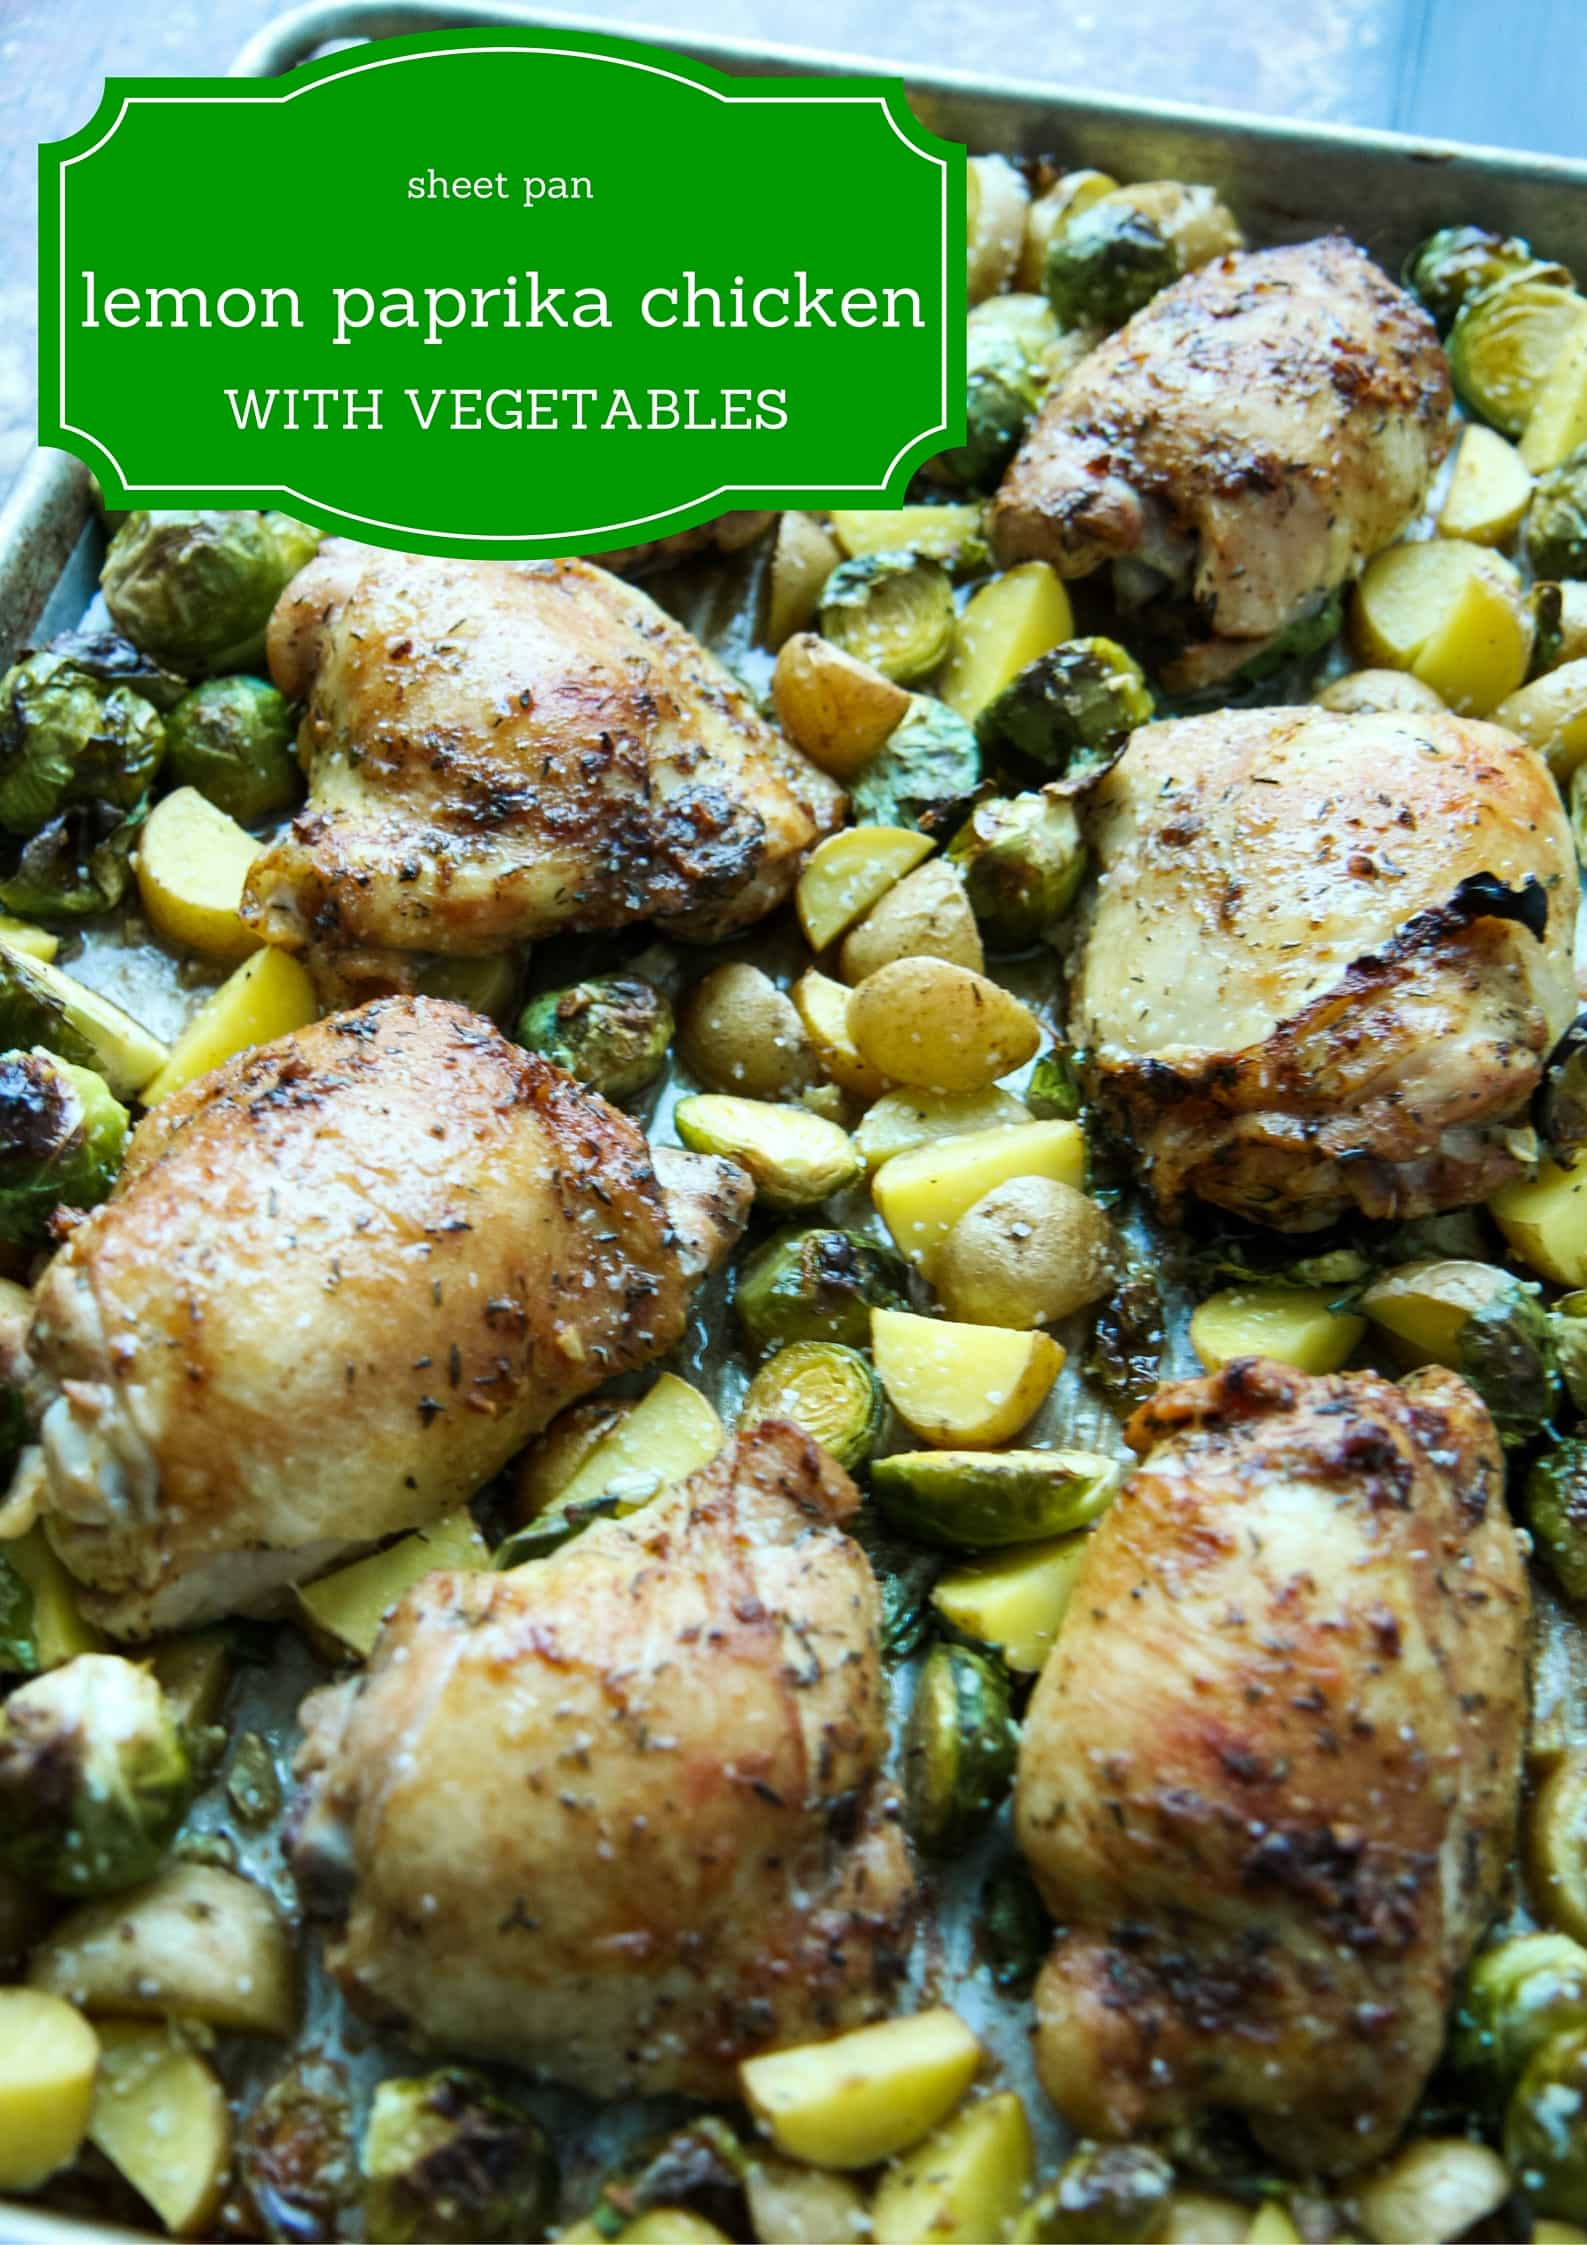 sheet pan lemon paprika chicken with vegetables